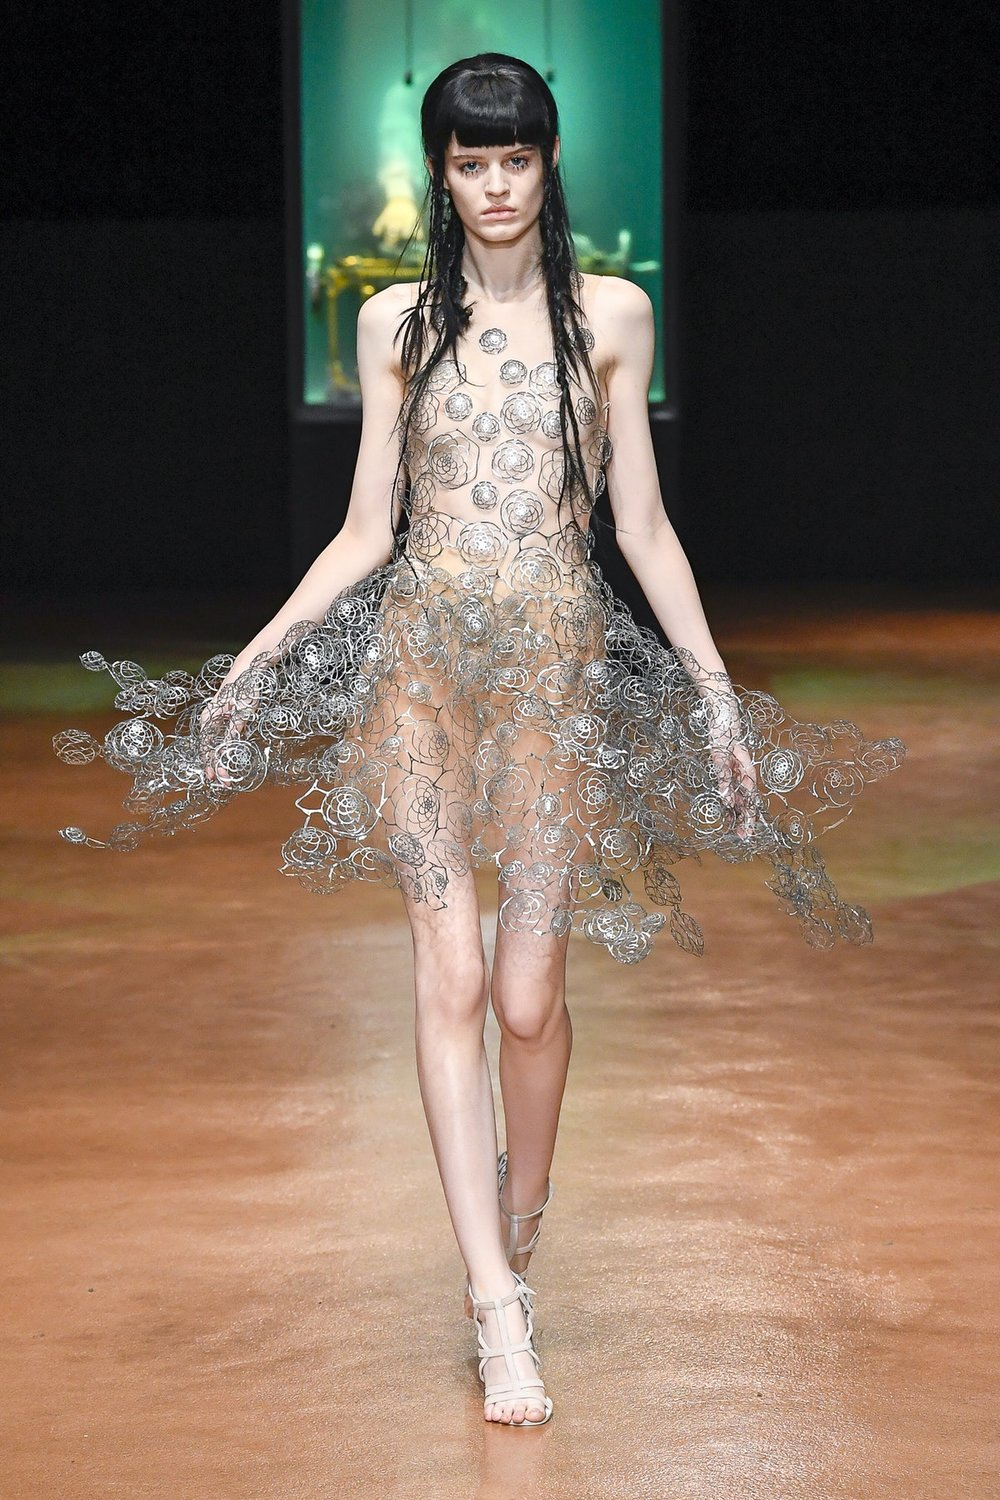 Pushing the boundaries - one of Iris van Herpen's experimental styles.